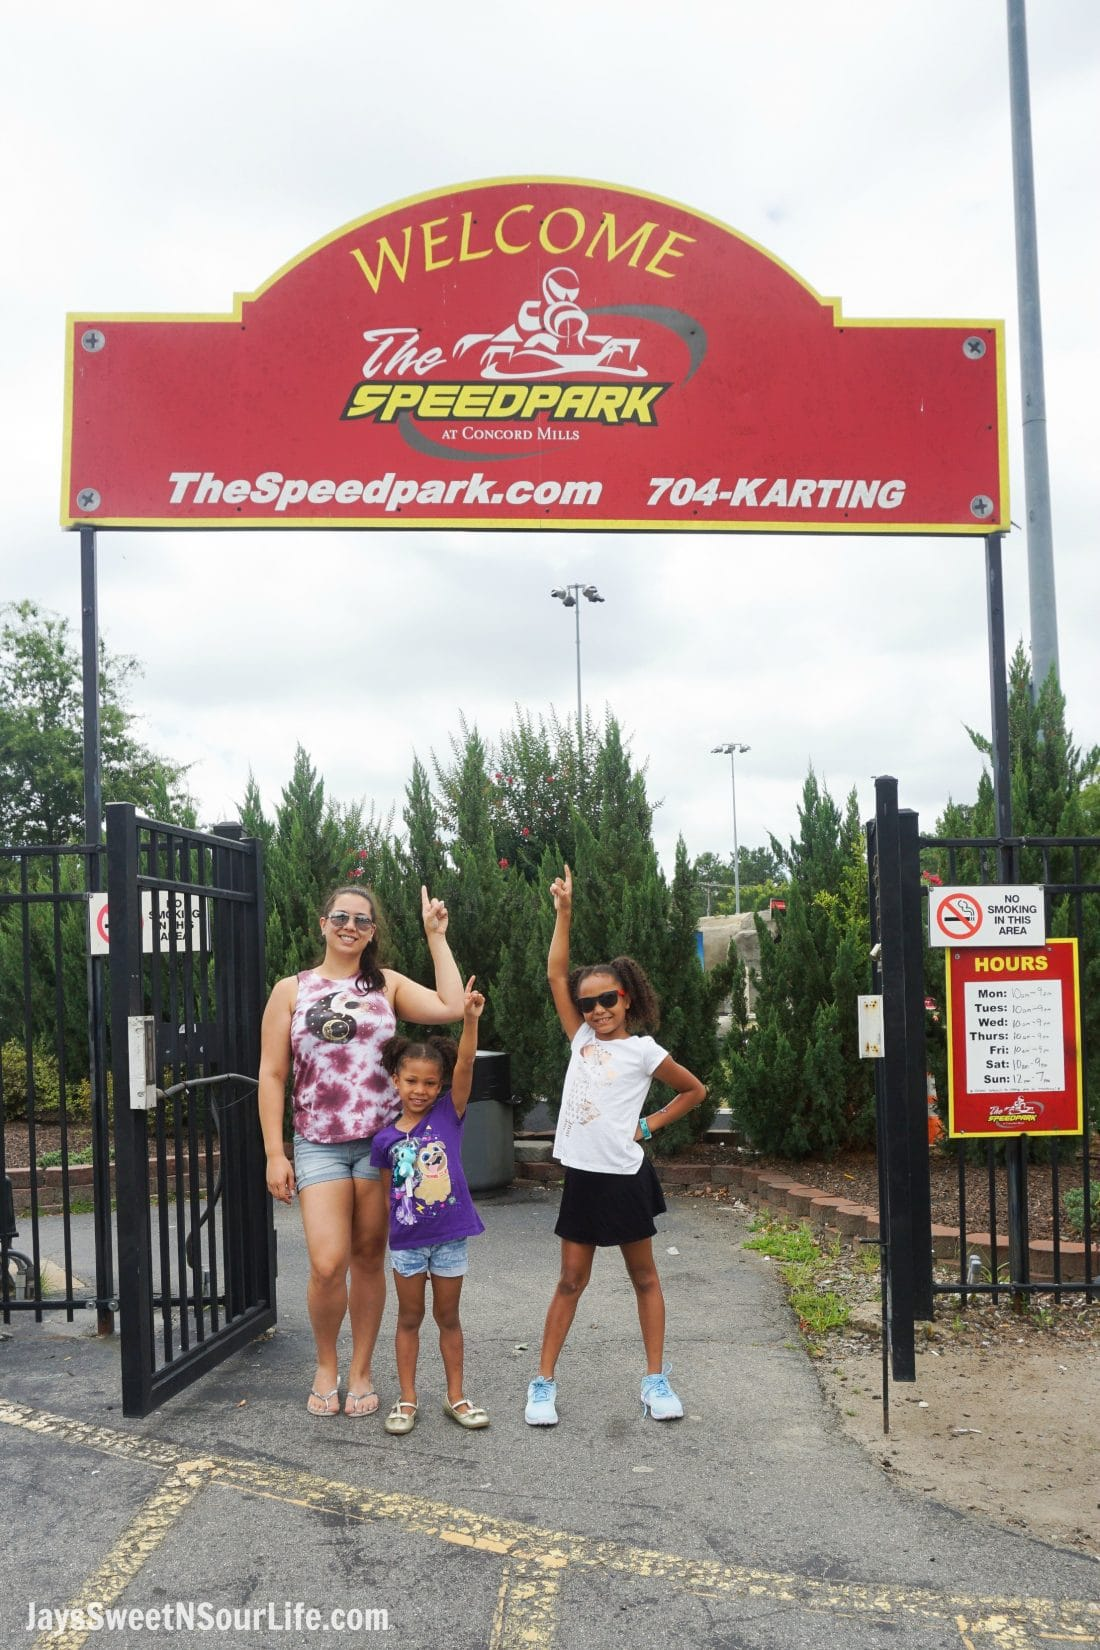 SpeedPark - Visit Cabarrus County Entrance Family Shot. A Large Families Adventure Guide To Cabarrus County - North Carolina - via JaysSweetNSourLife.com.